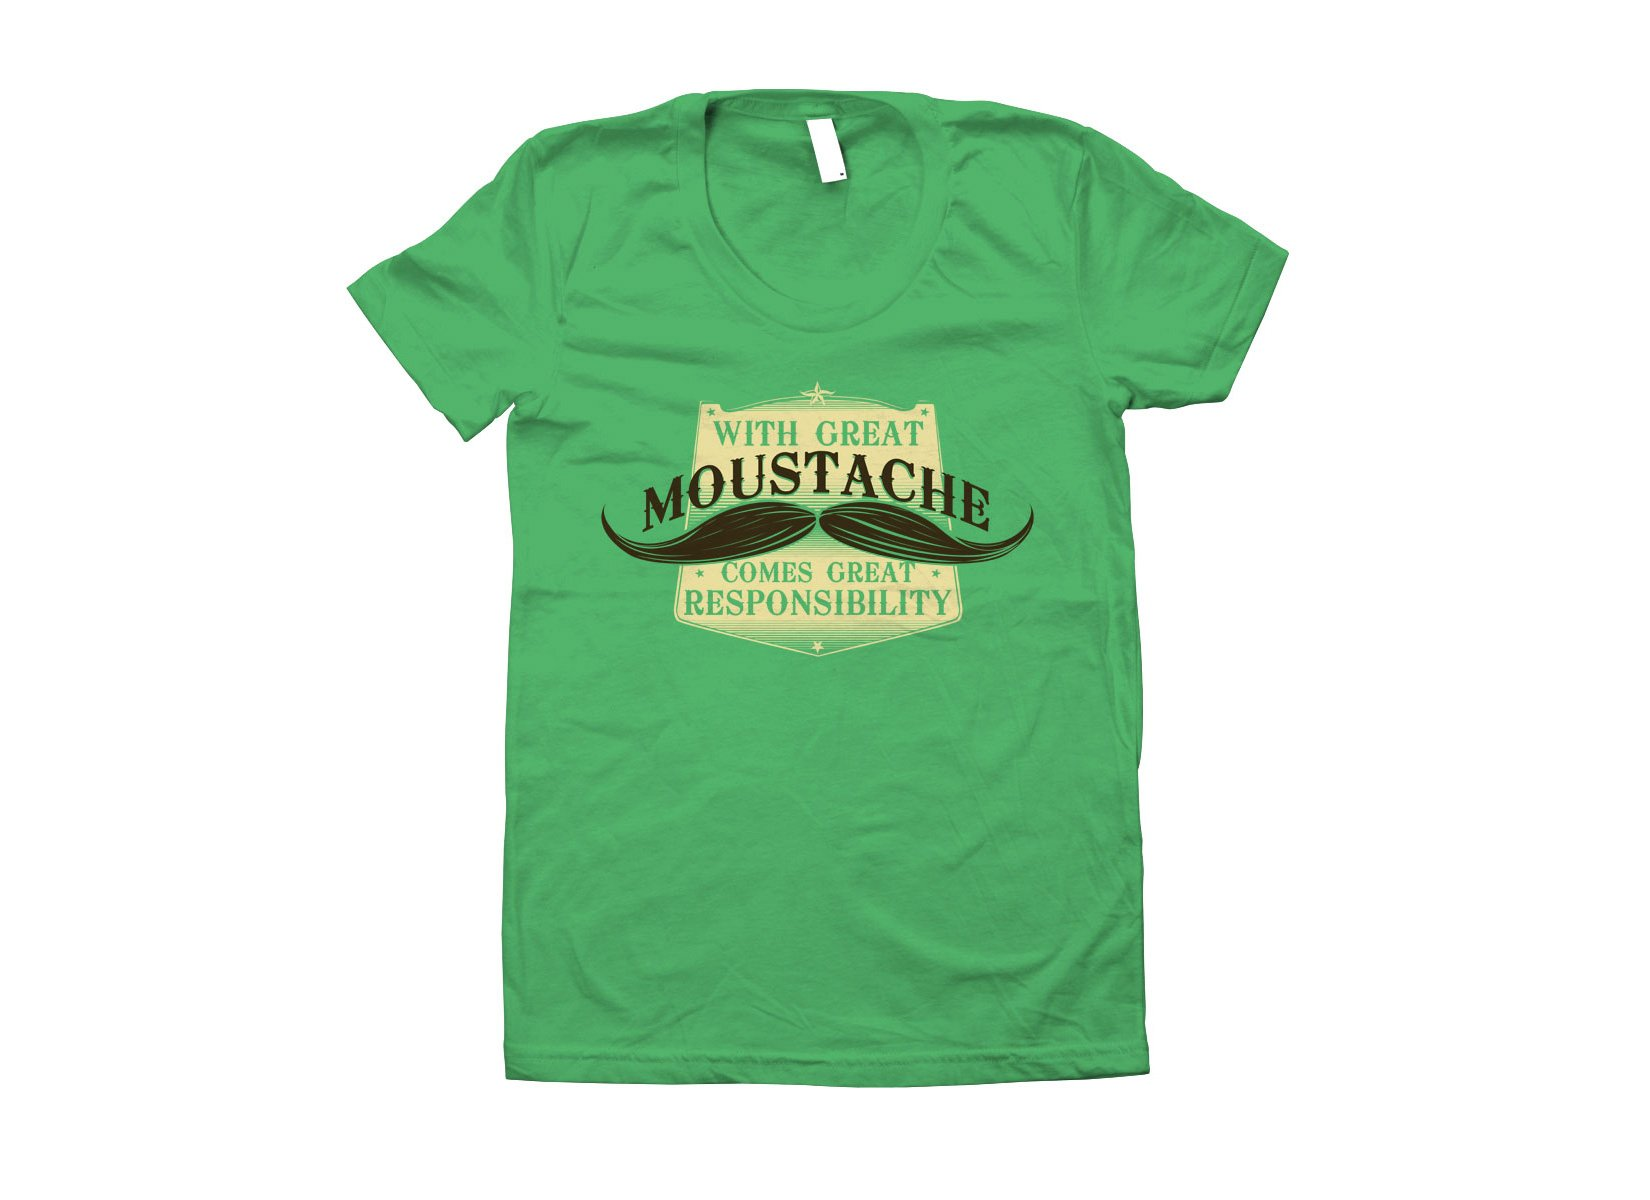 With Great Moustache on Juniors T-Shirt